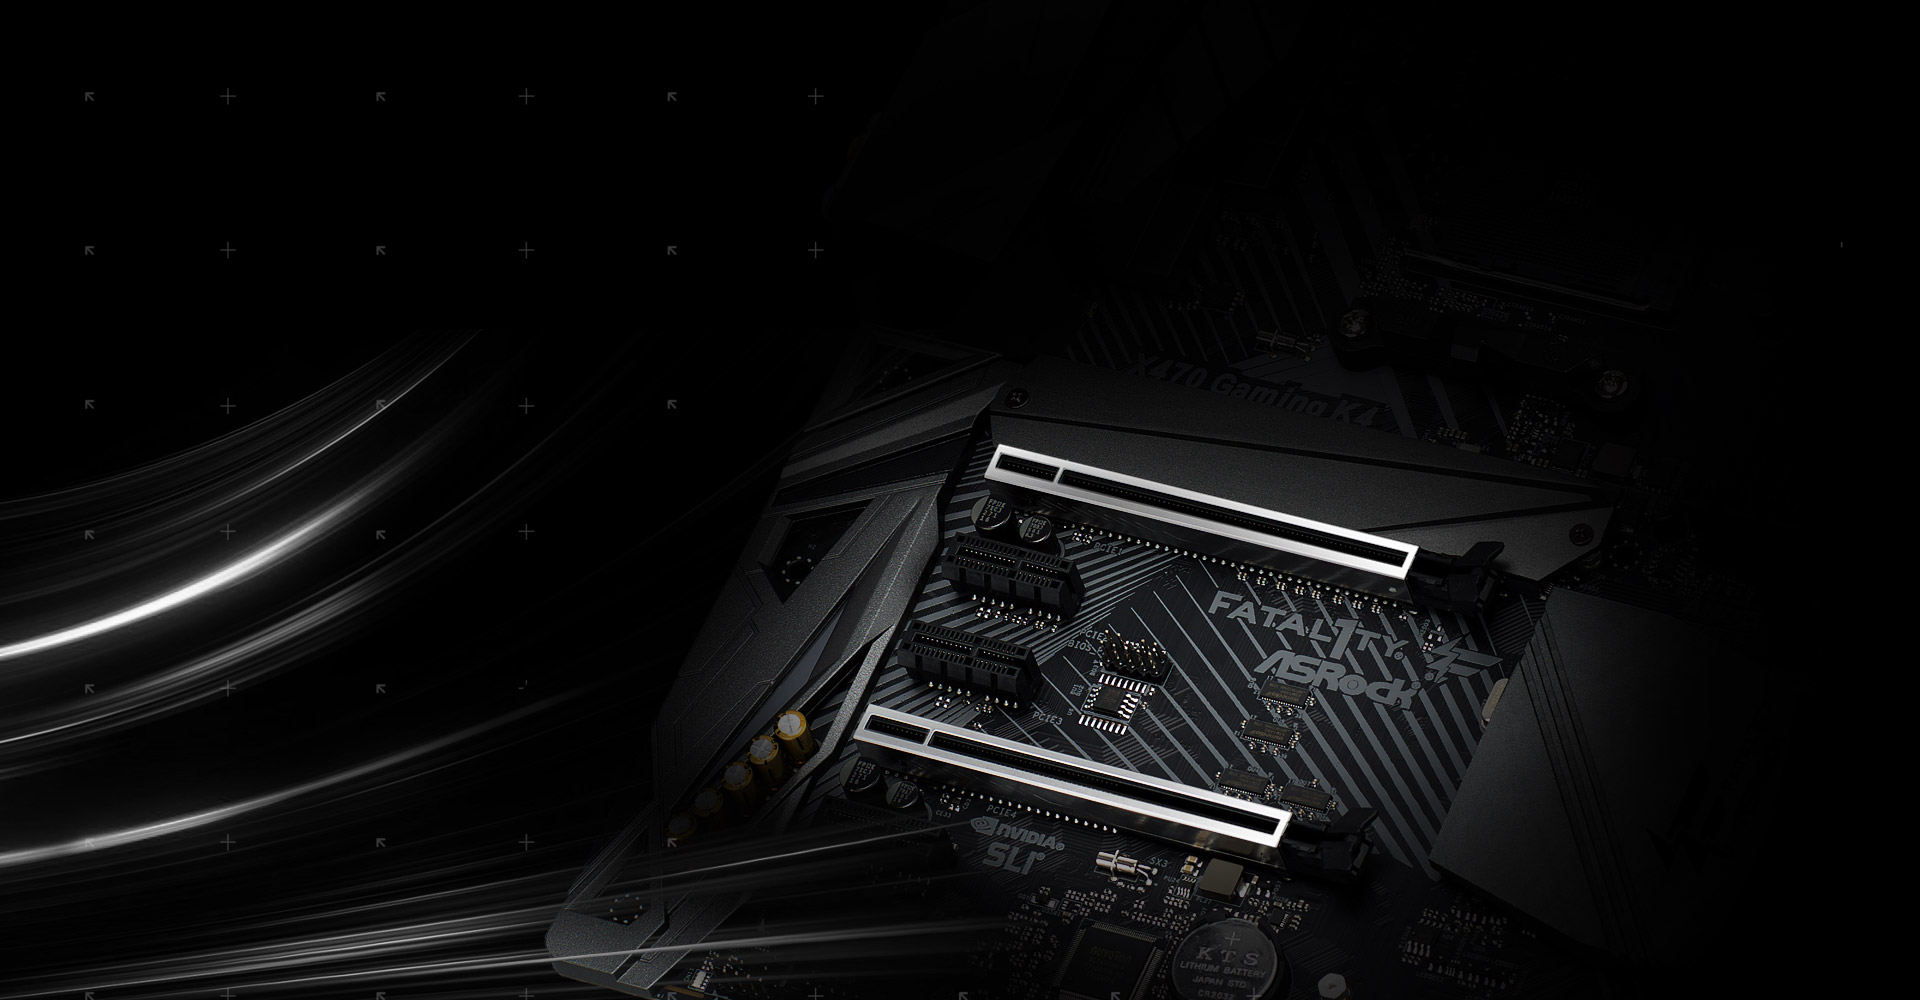 Asrock Fatal1ty X470 Gaming K4 Stereo Plug Wiring Diagram In Addition Headphone Jack The Advanced Pci E Steel Slot Packed With Solid Cover That Prevent Any Signal Interference Graphics Cards It Also Ensures Heavy To